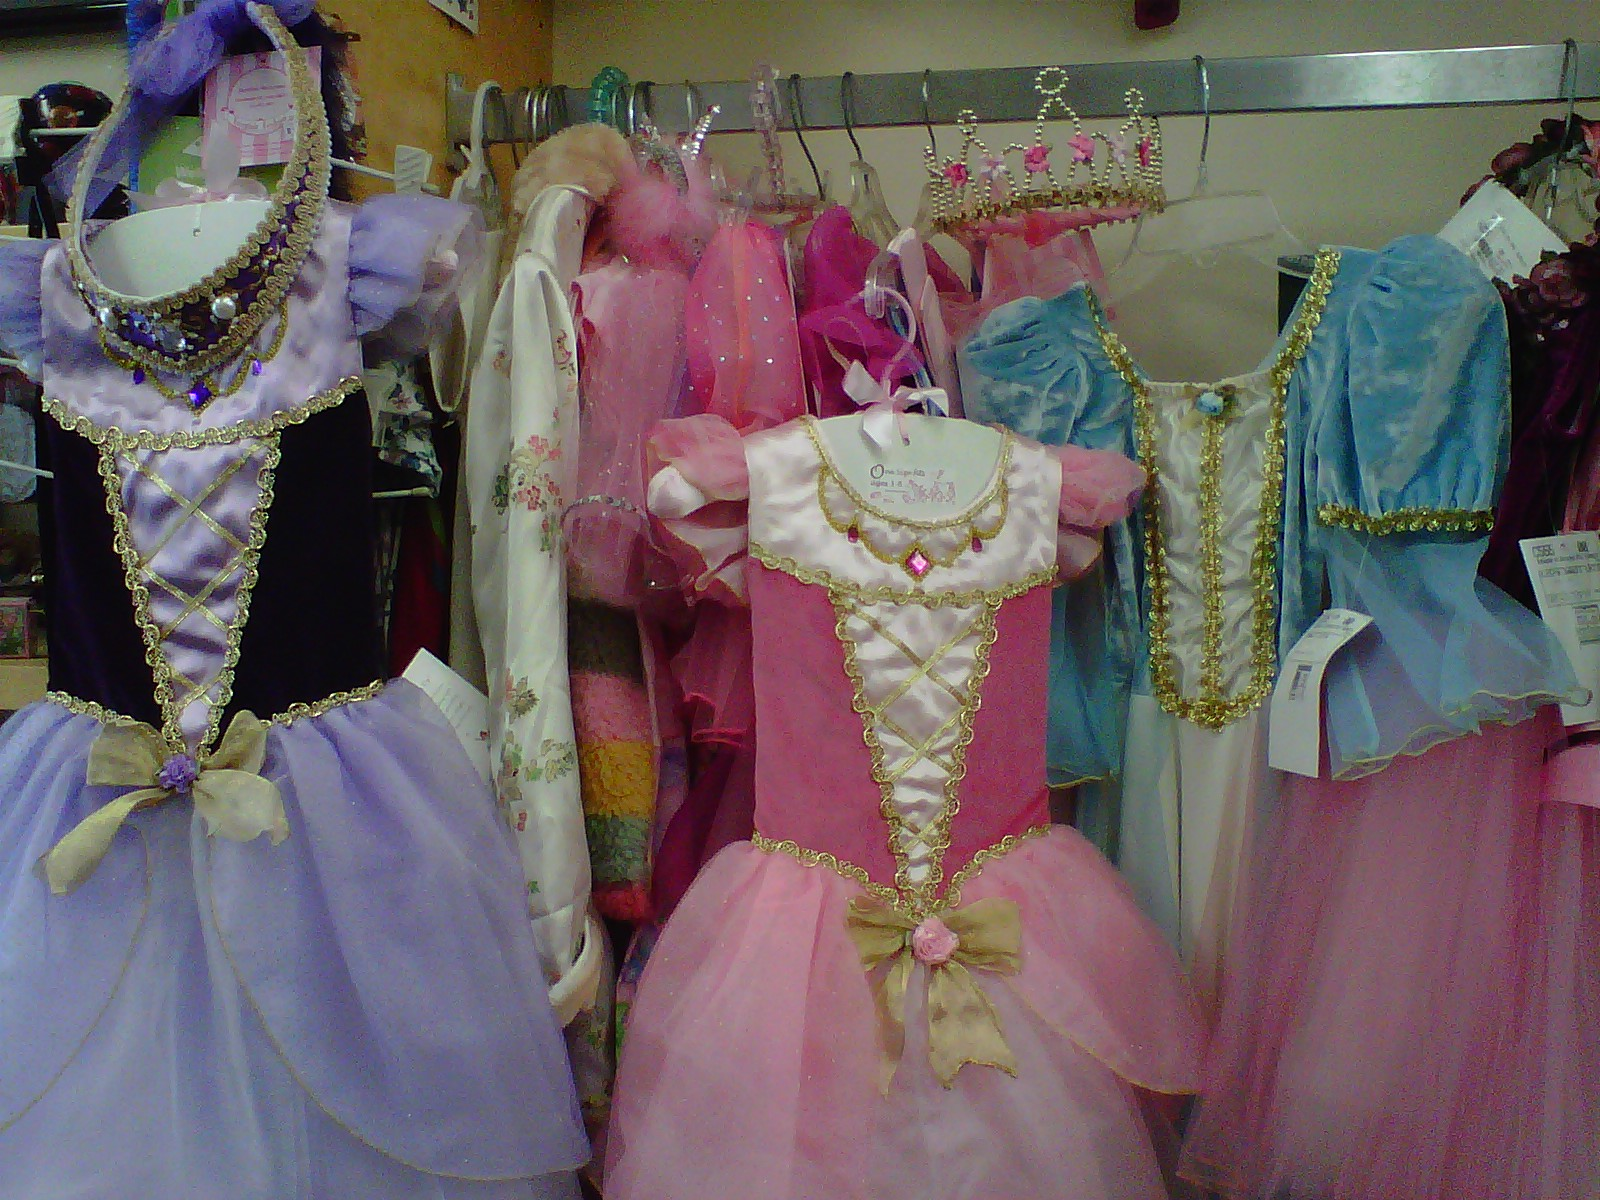 Princess Party Dress Up | Fairytale Princess Party Dress ... - photo#7